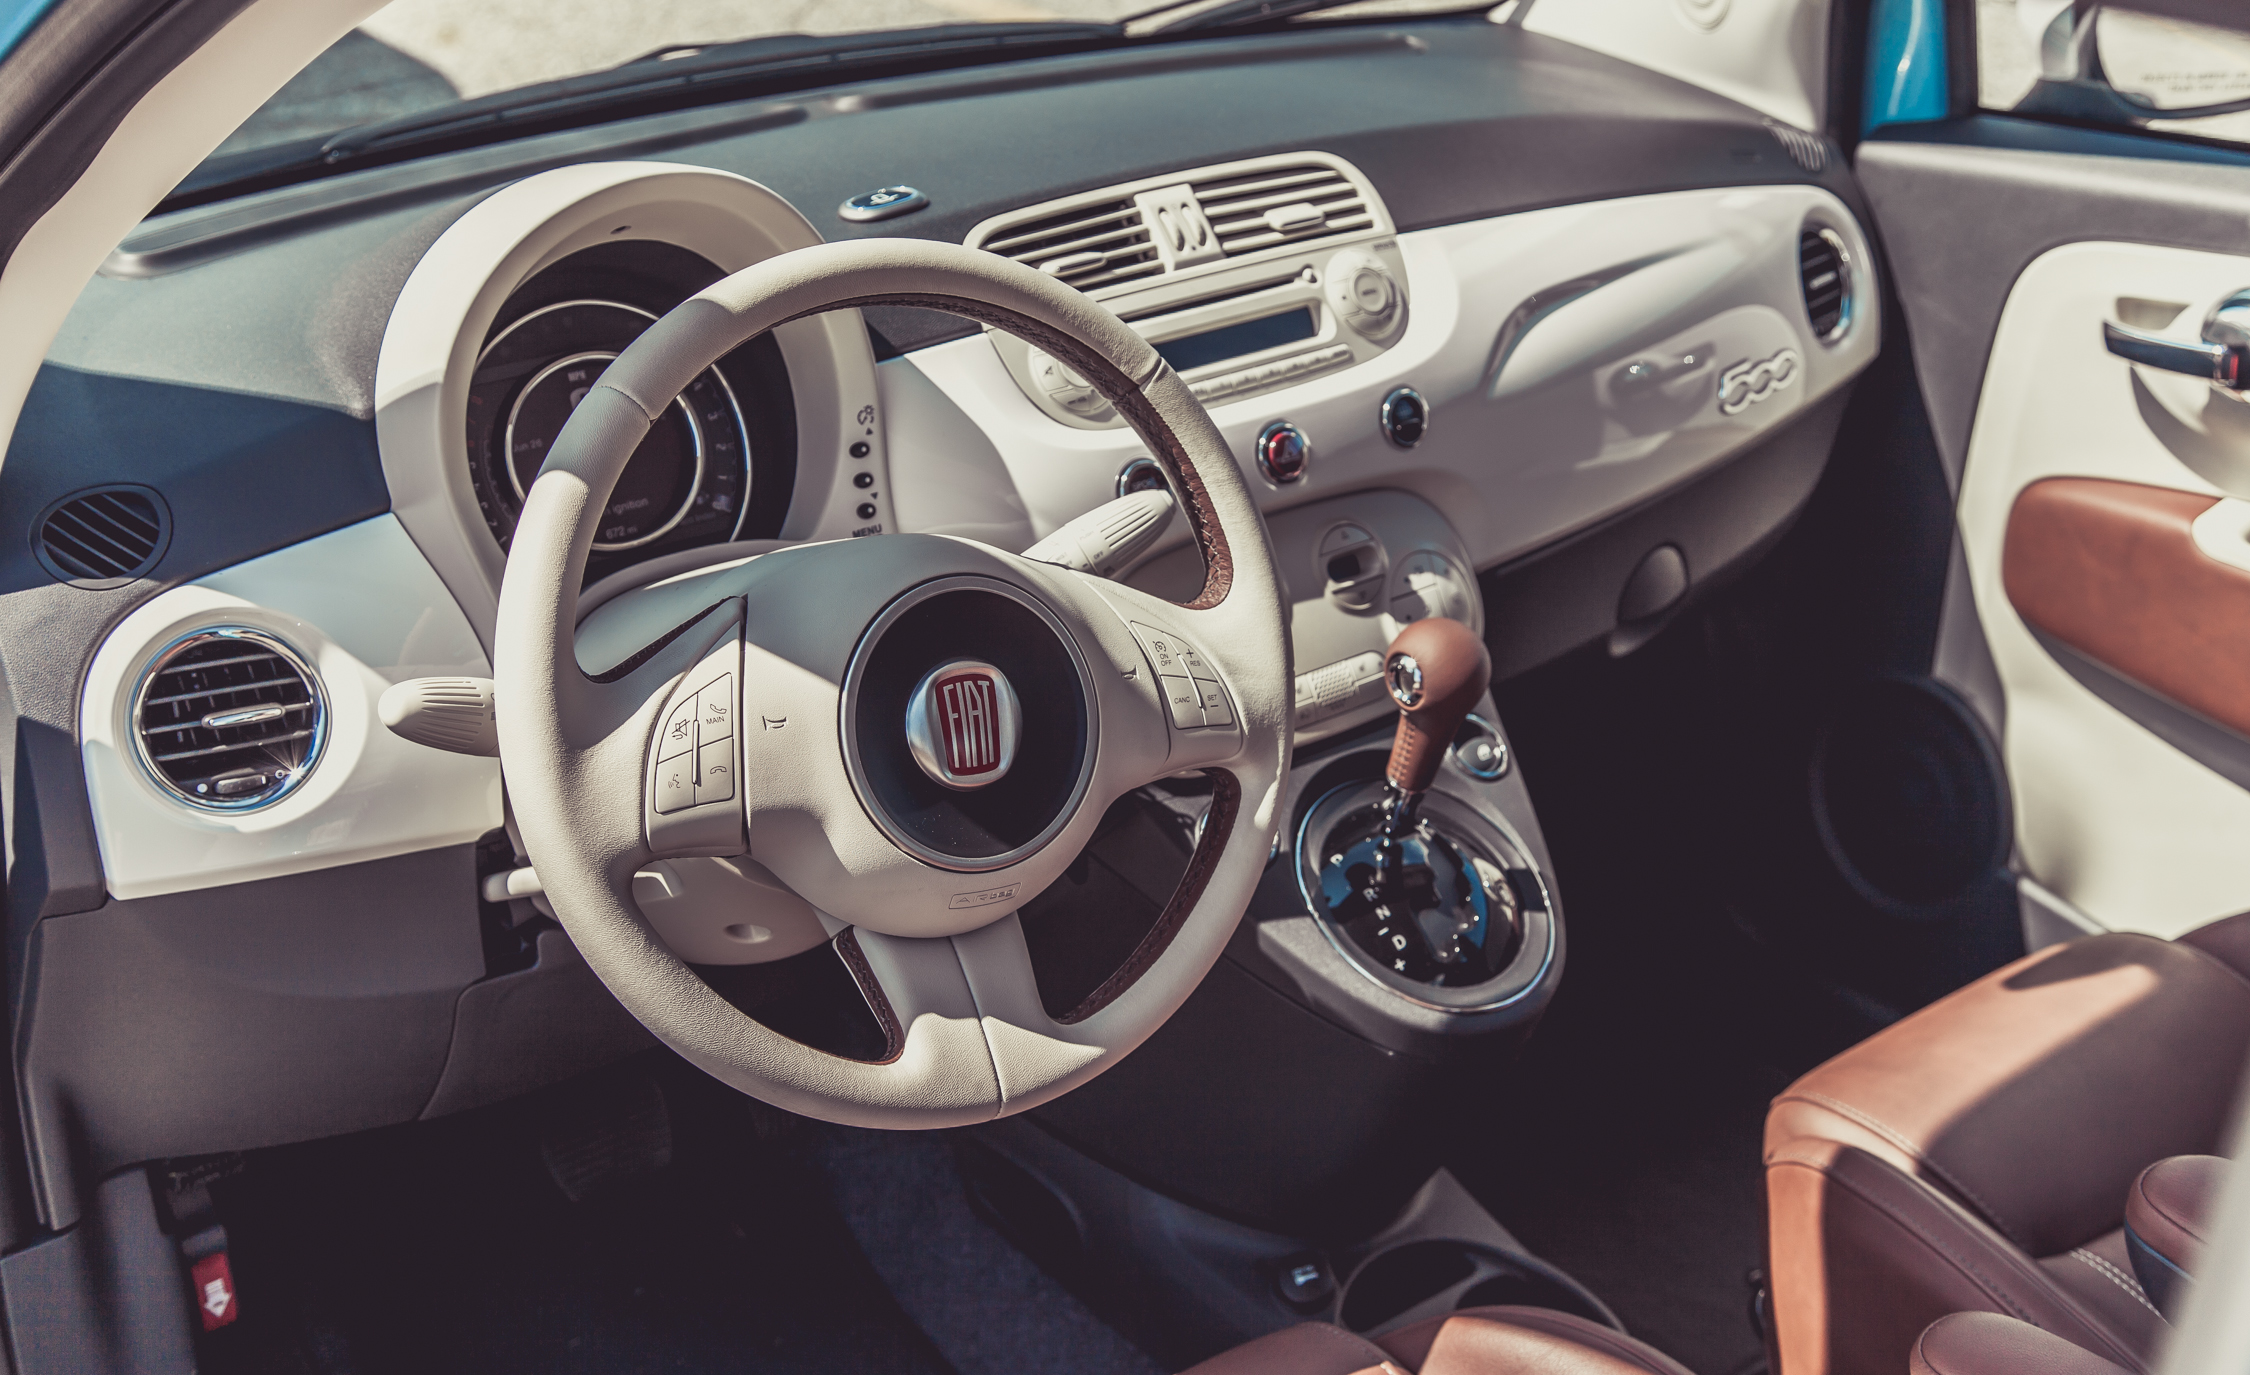 2014 Fiat 500 1957 Edition Interior (View 1 of 12)